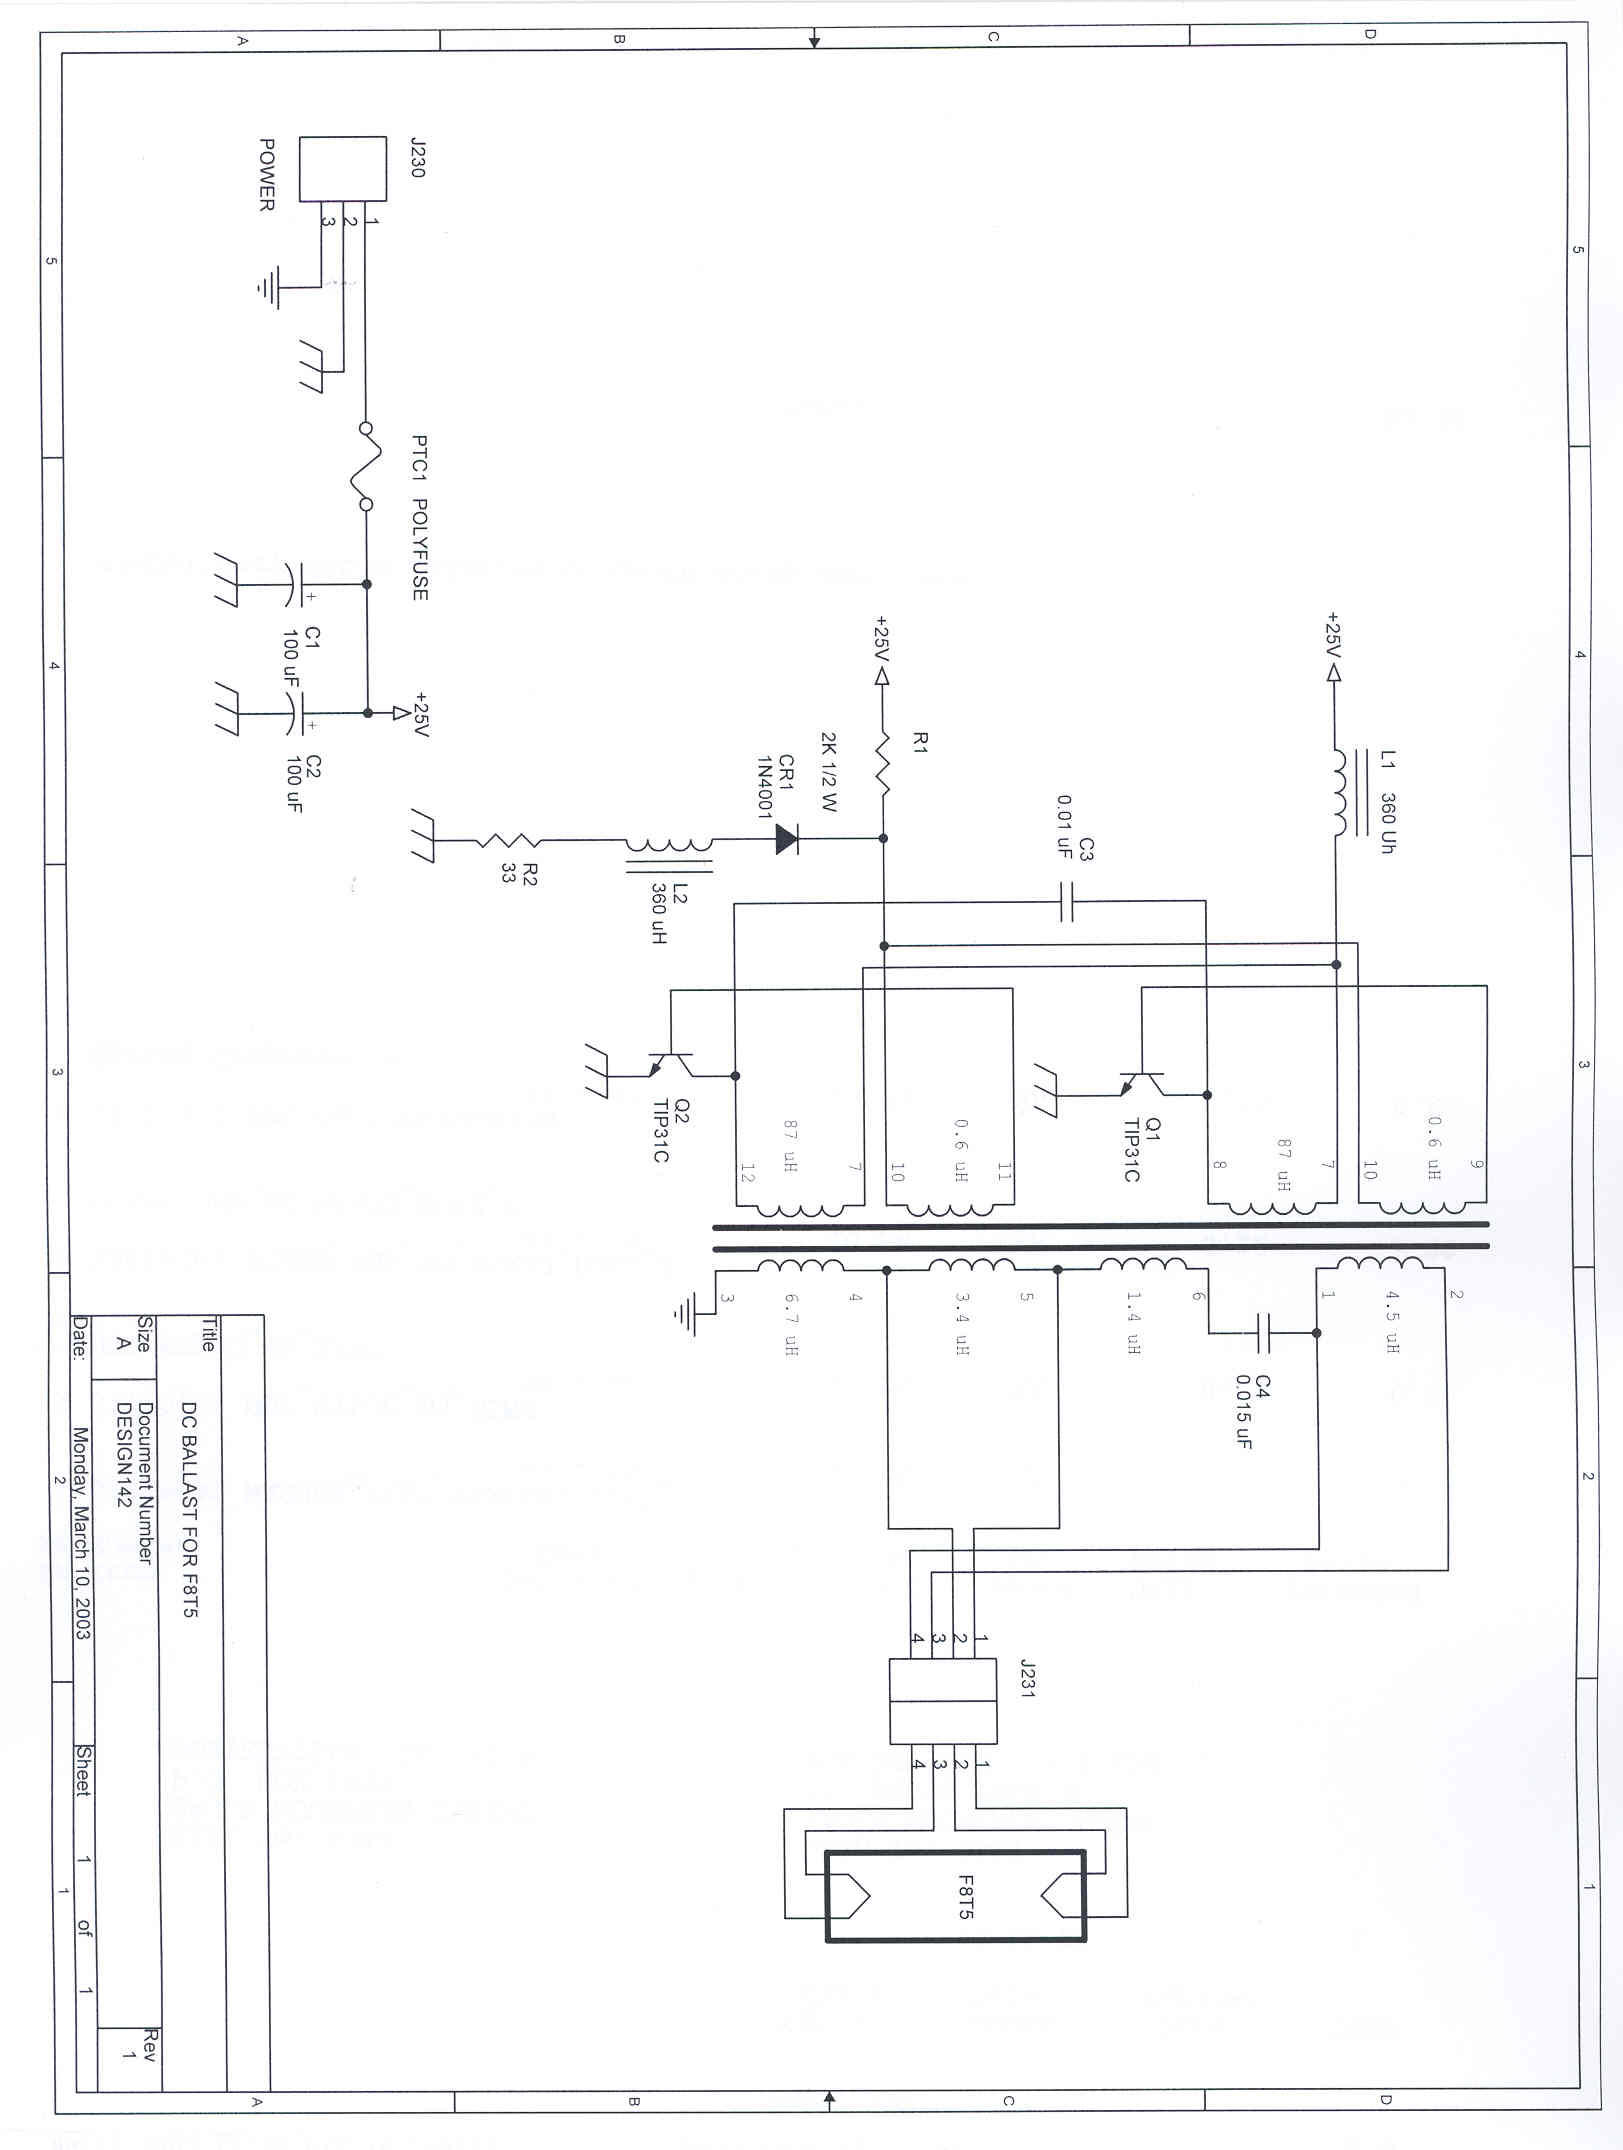 Fulham Workhorse 3 Wiring Diagram Source Ballast T6 Furthermore 5 Pin Din Plug Besides Wh2 120 C